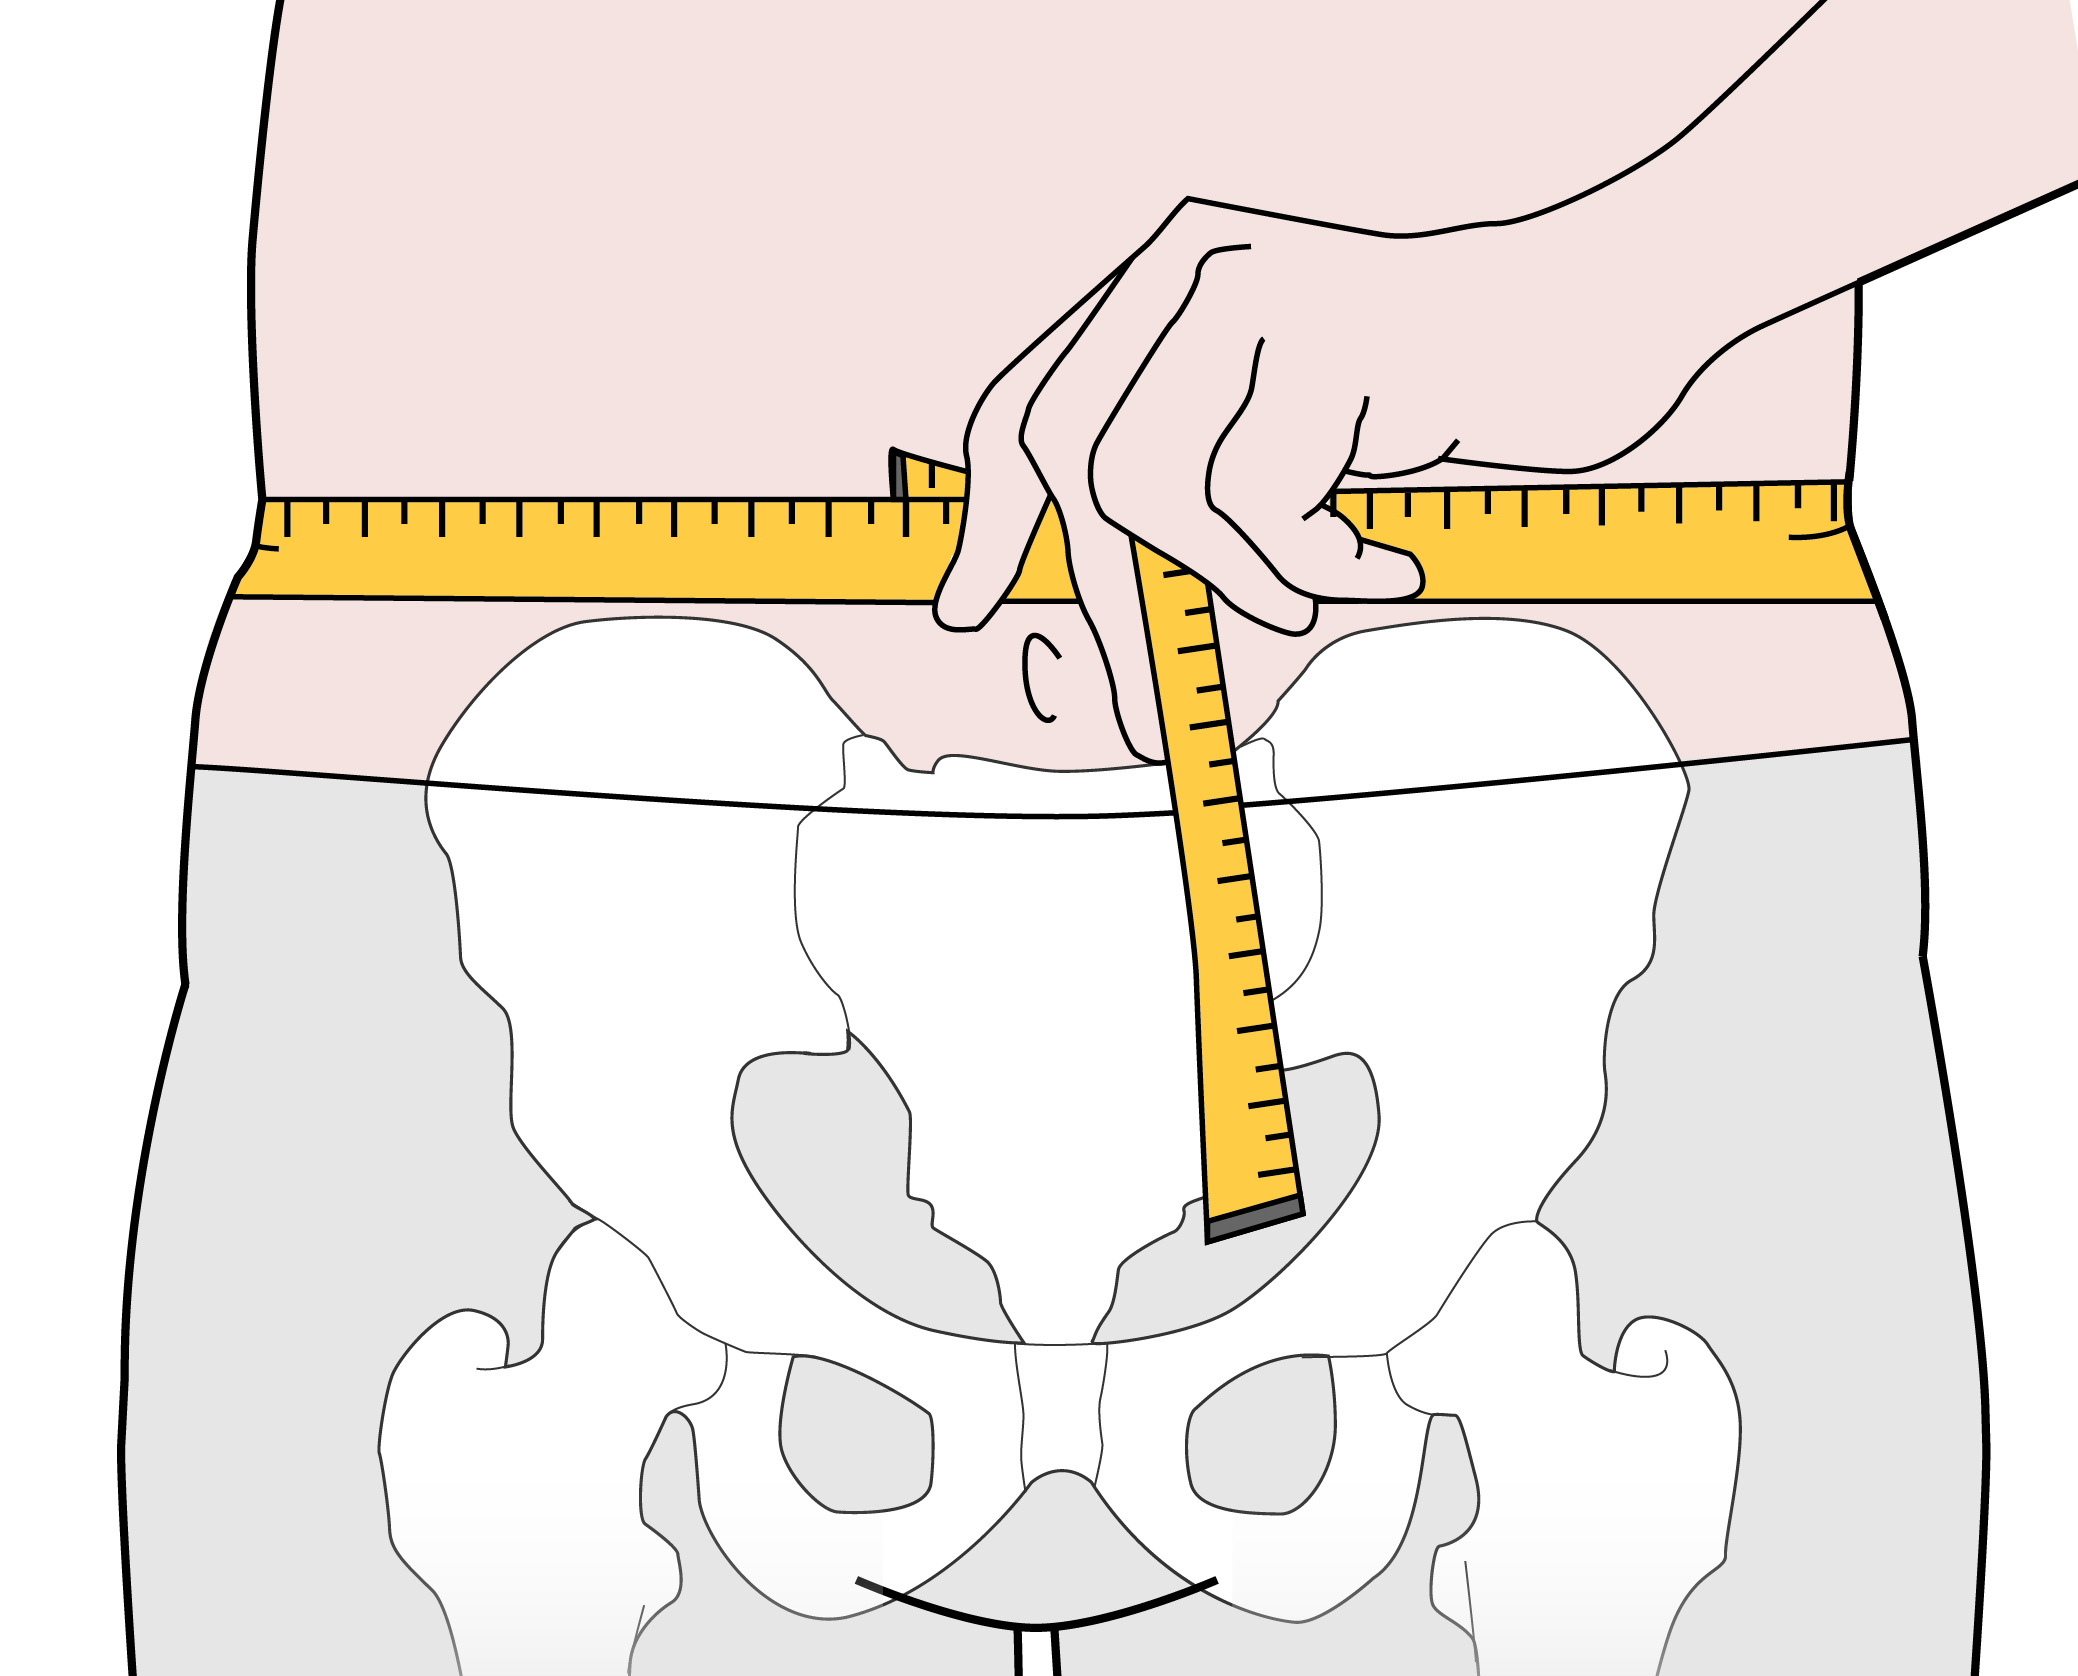 Place the tape measure evenly around the abdomen at the level of this bone.